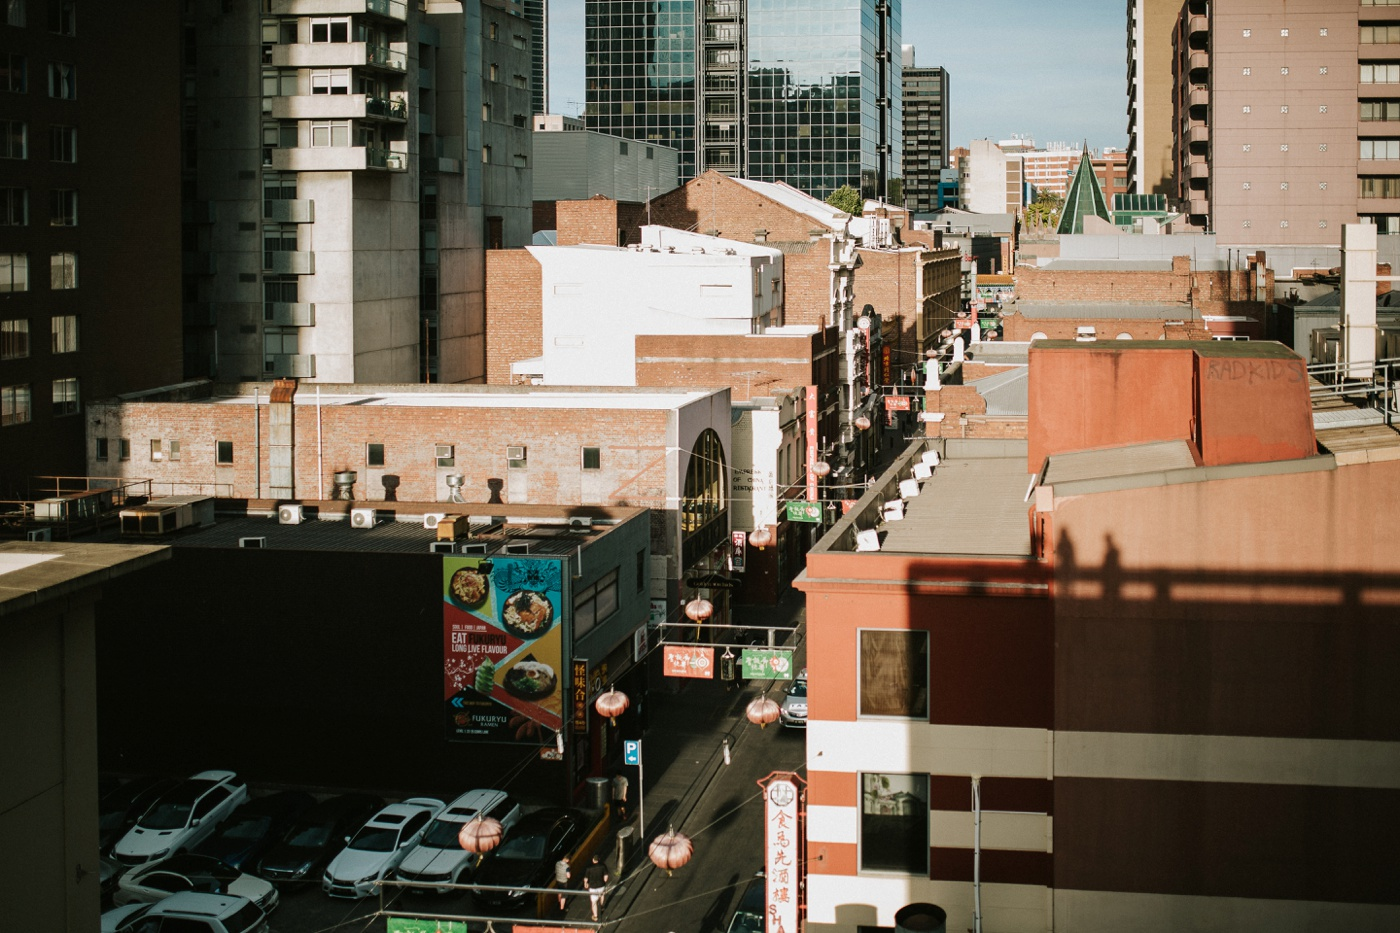 heli-alex_melbourne-fun-candid-gritty-relaxed-city-urban-couples-engagement-session_melbourne-wedding-photography_13